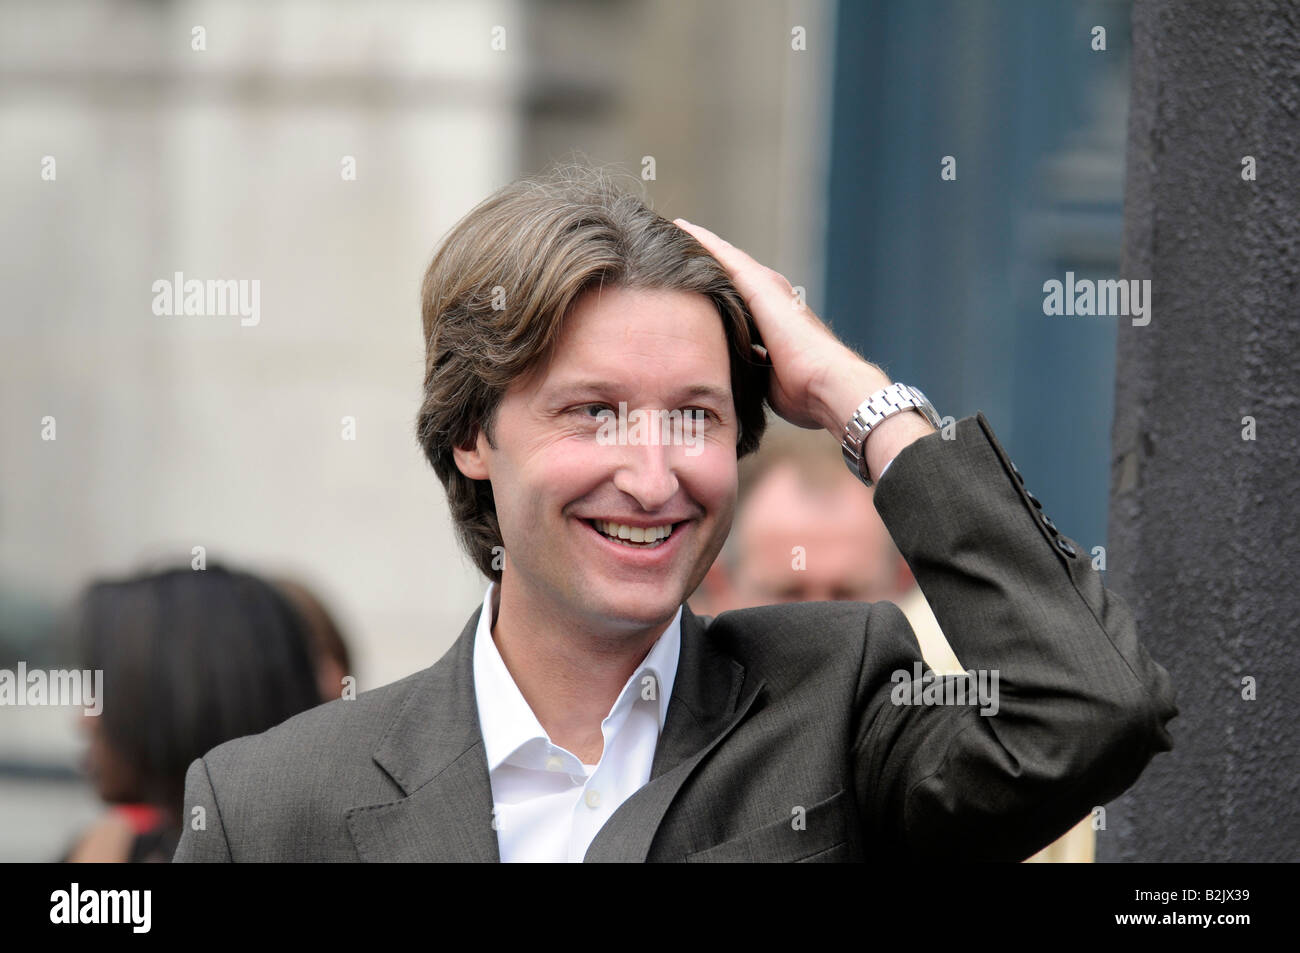 Portrait of Jean-Charles Decaux, chairman and co-CEO of French advertising giant firm JC Decaux. - Stock Image